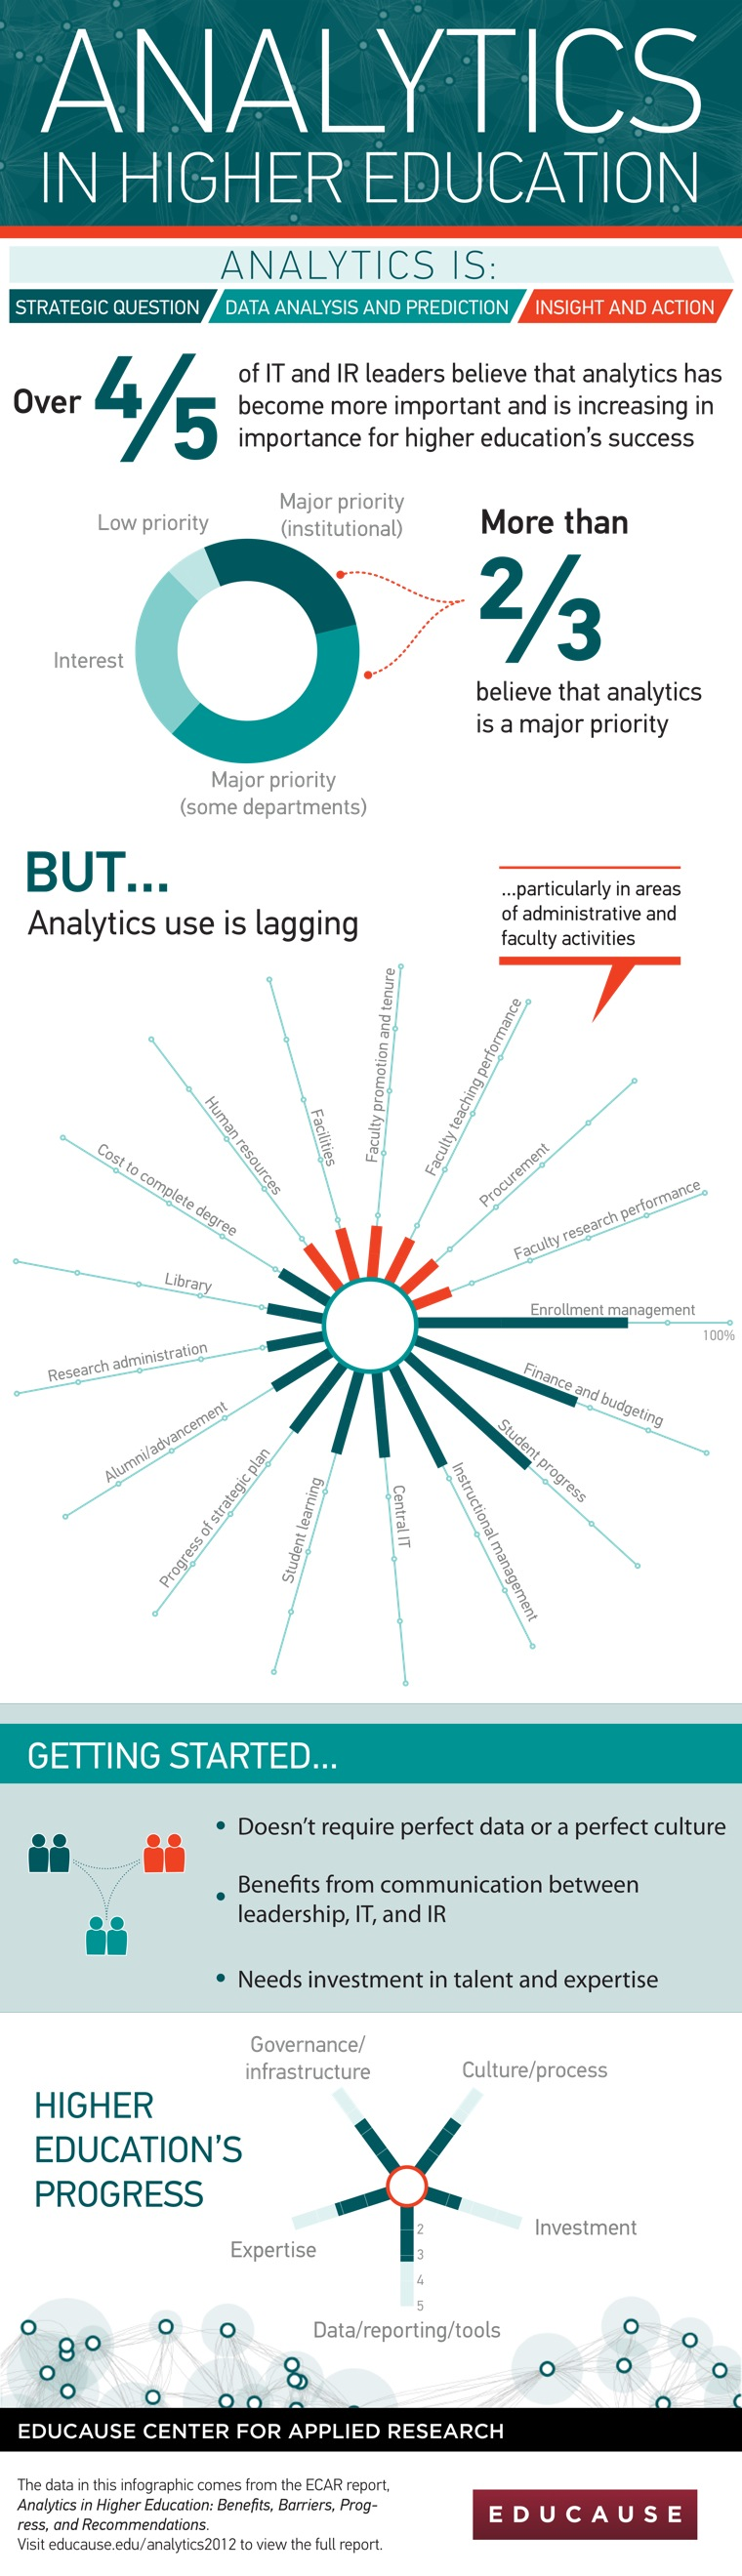 Analytics in Higher Education Infographic